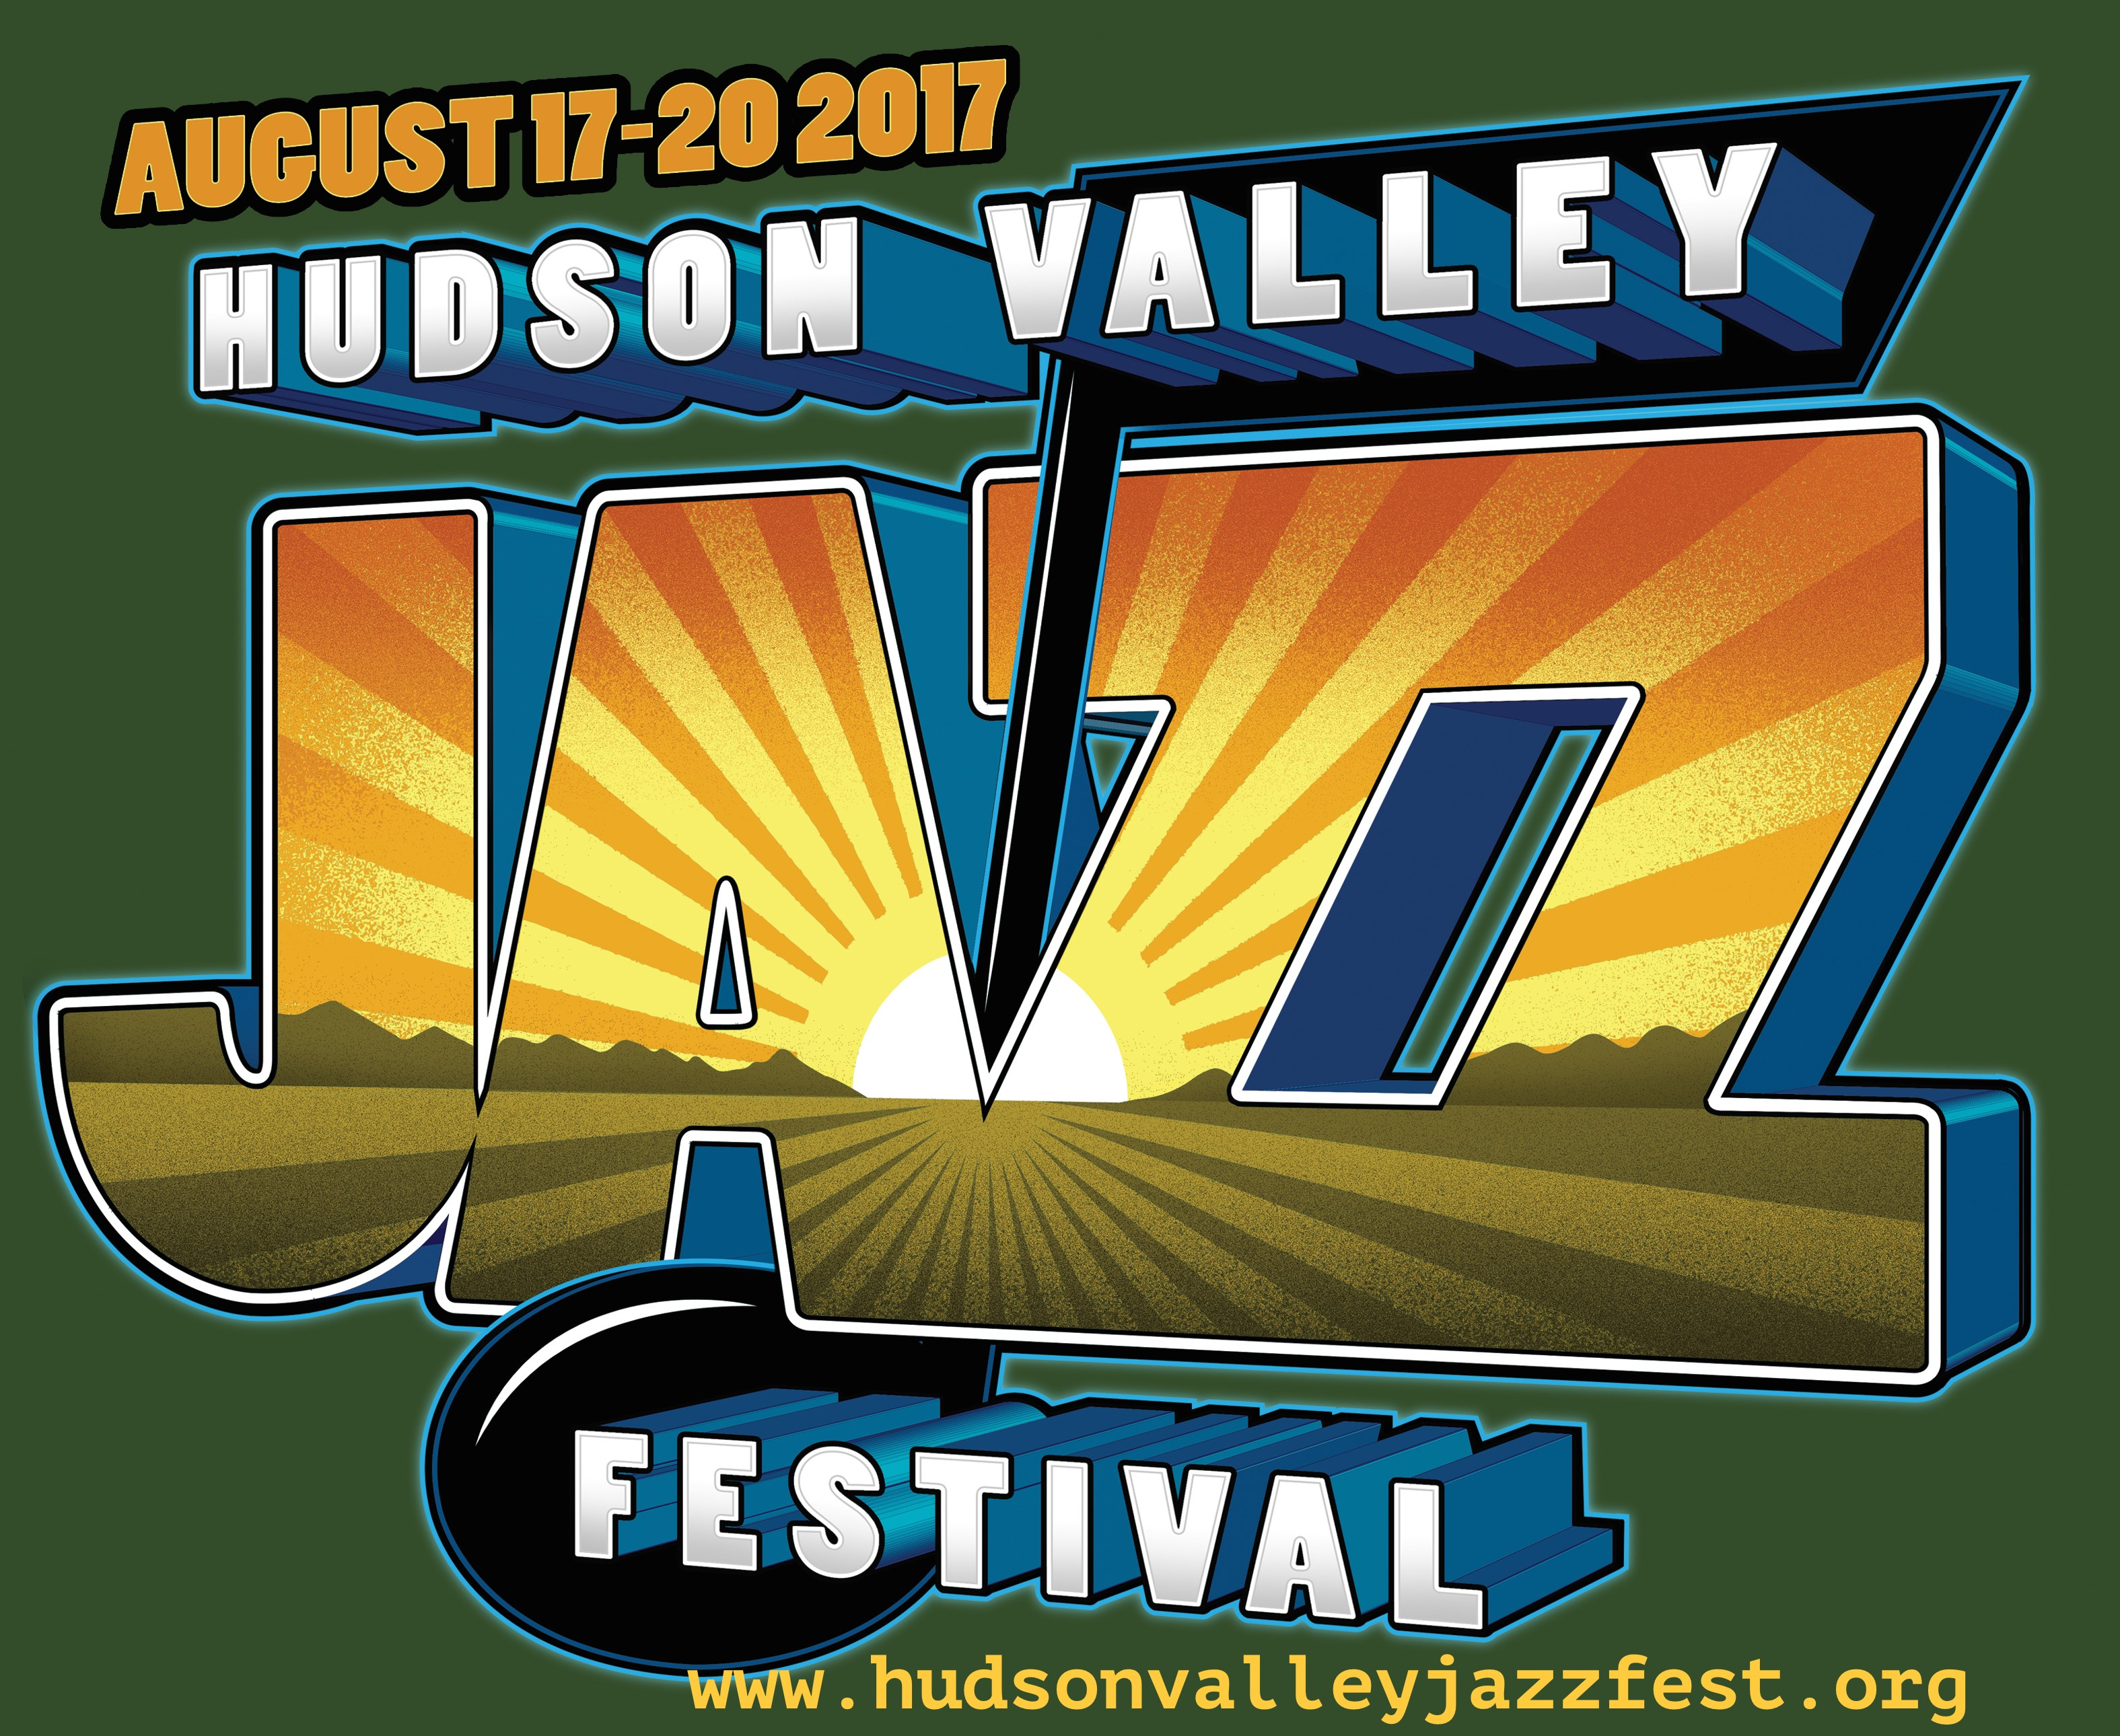 Hudson Valley Jazz Fest 2017